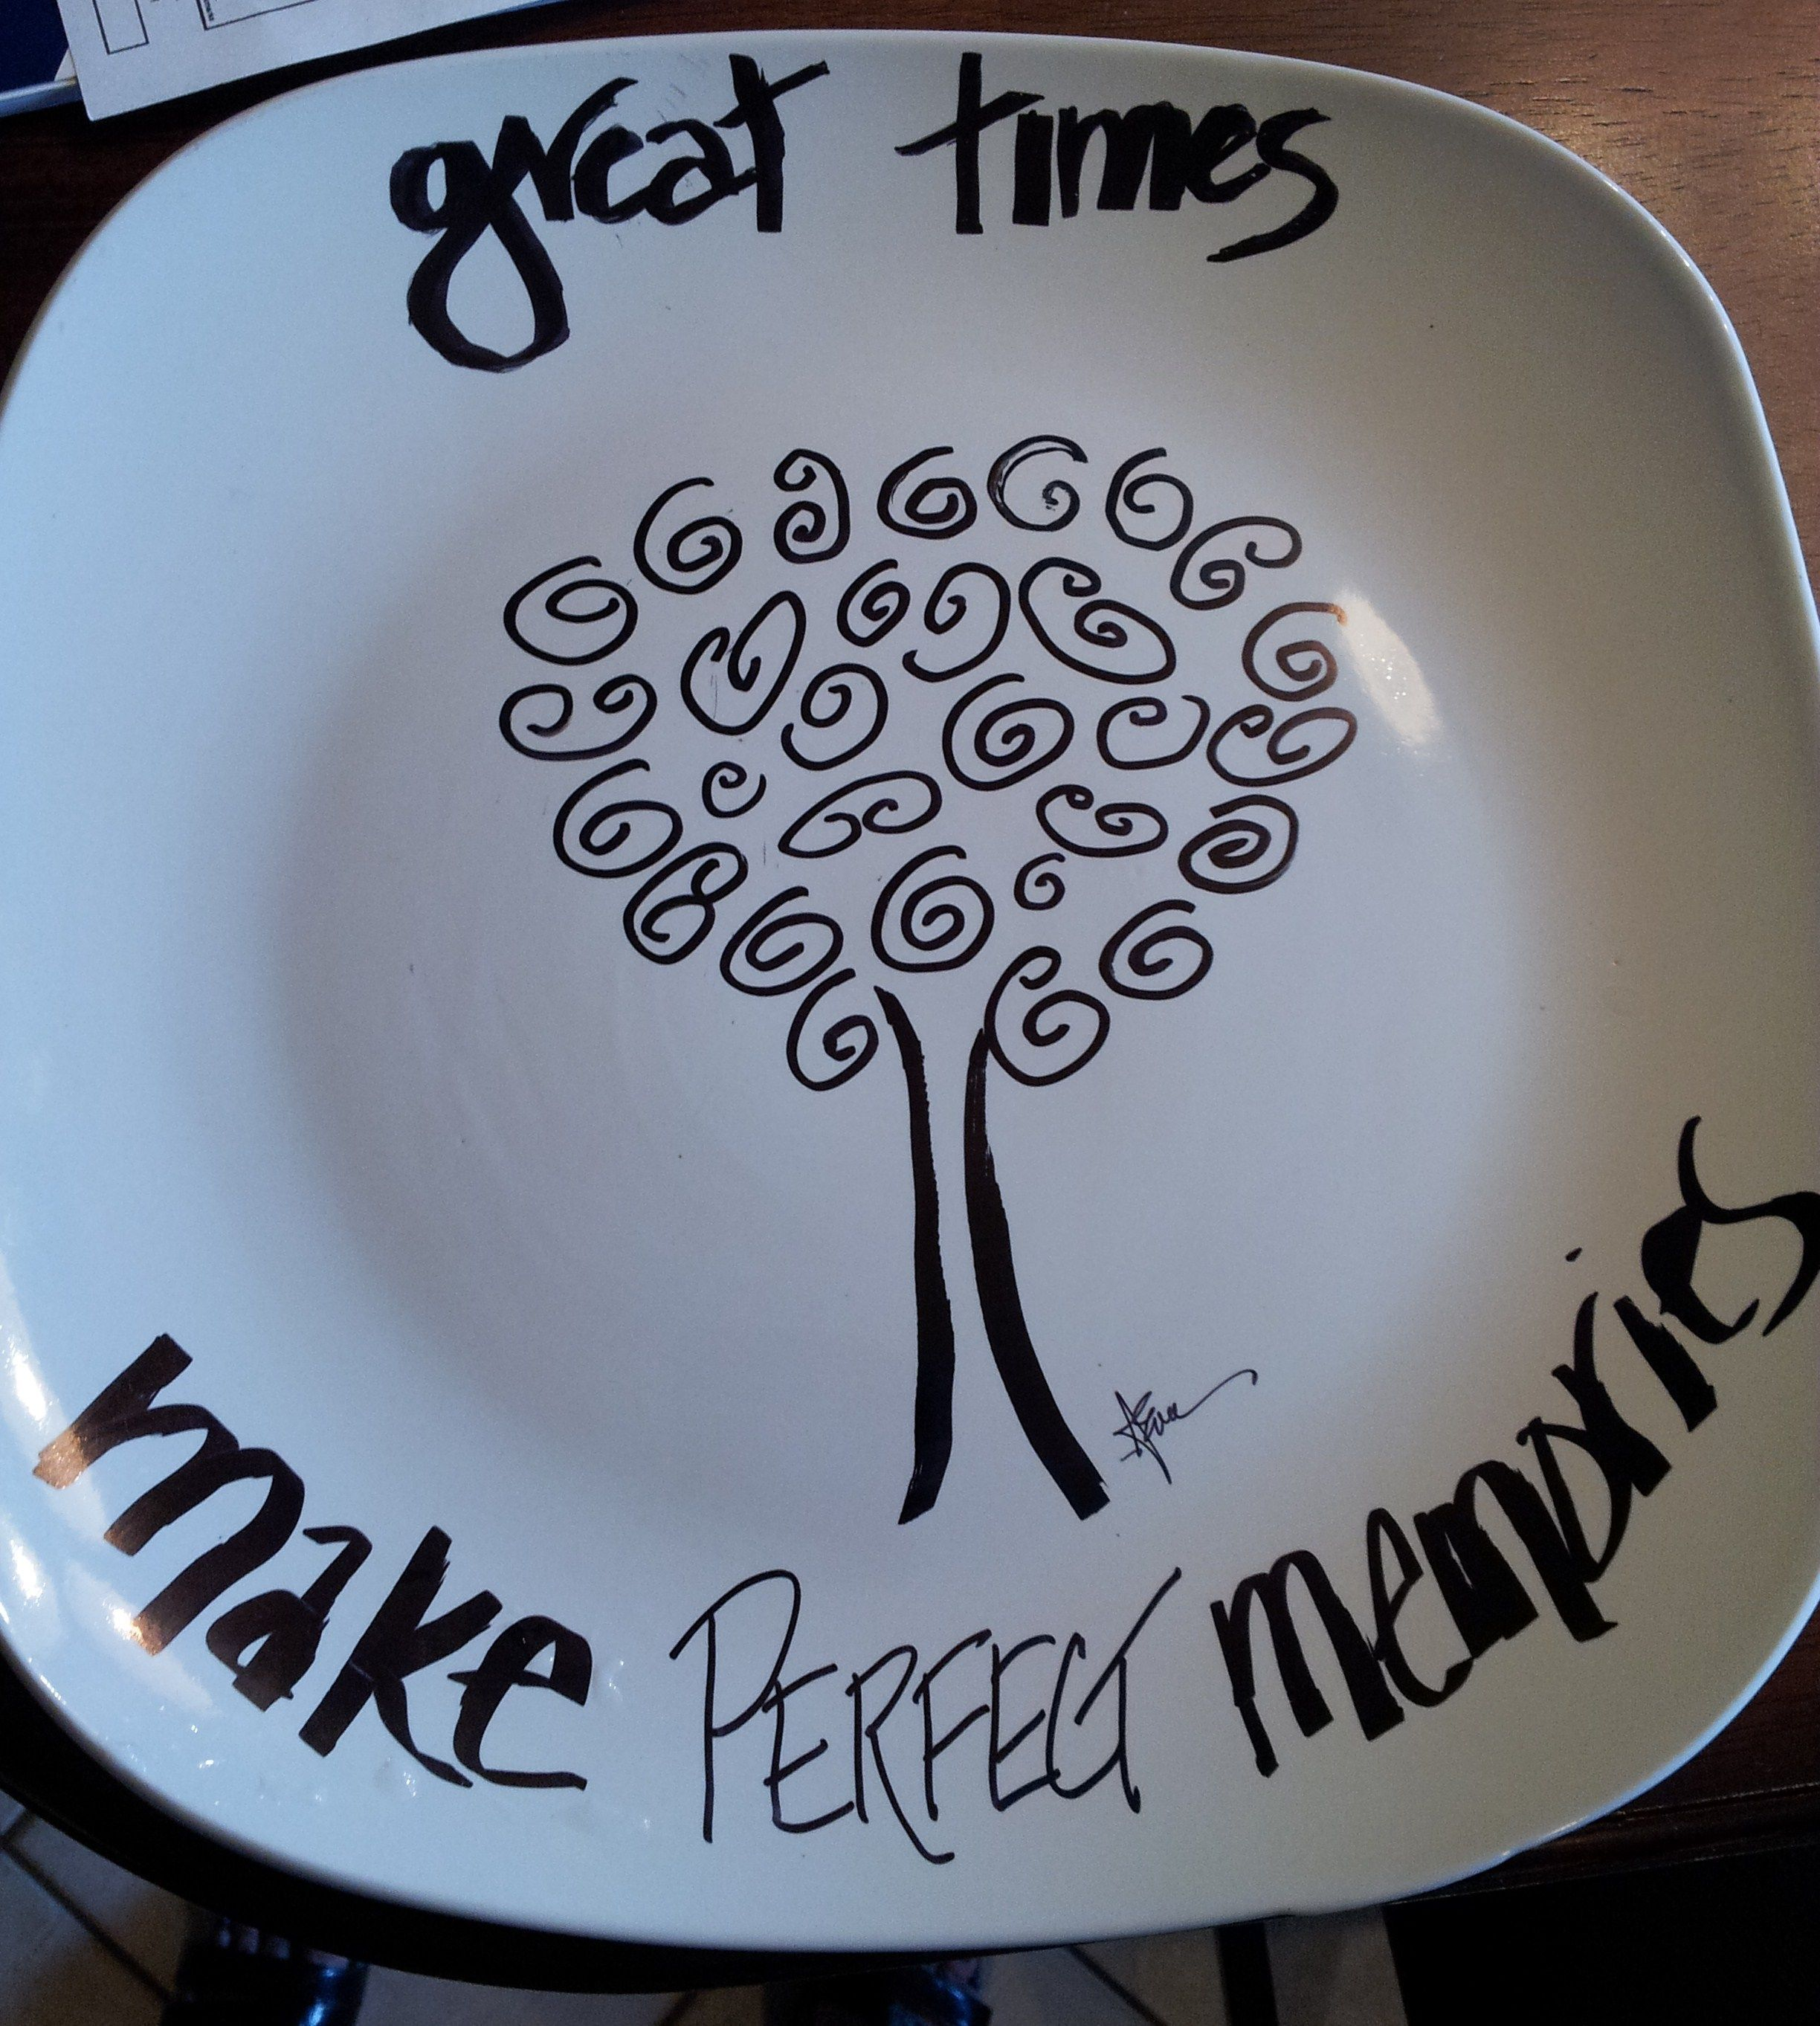 My first attempt at the Sharpie Plate idea! Can't wait to make more...maybe a whole new set of dishes!! #sharpieplates My first attempt at the Sharpie Plate idea! Can't wait to make more...maybe a whole new set of dishes!! #sharpieplates My first attempt at the Sharpie Plate idea! Can't wait to make more...maybe a whole new set of dishes!! #sharpieplates My first attempt at the Sharpie Plate idea! Can't wait to make more...maybe a whole new set of dishes!! #sharpieplates My first attempt at the #sharpieplates